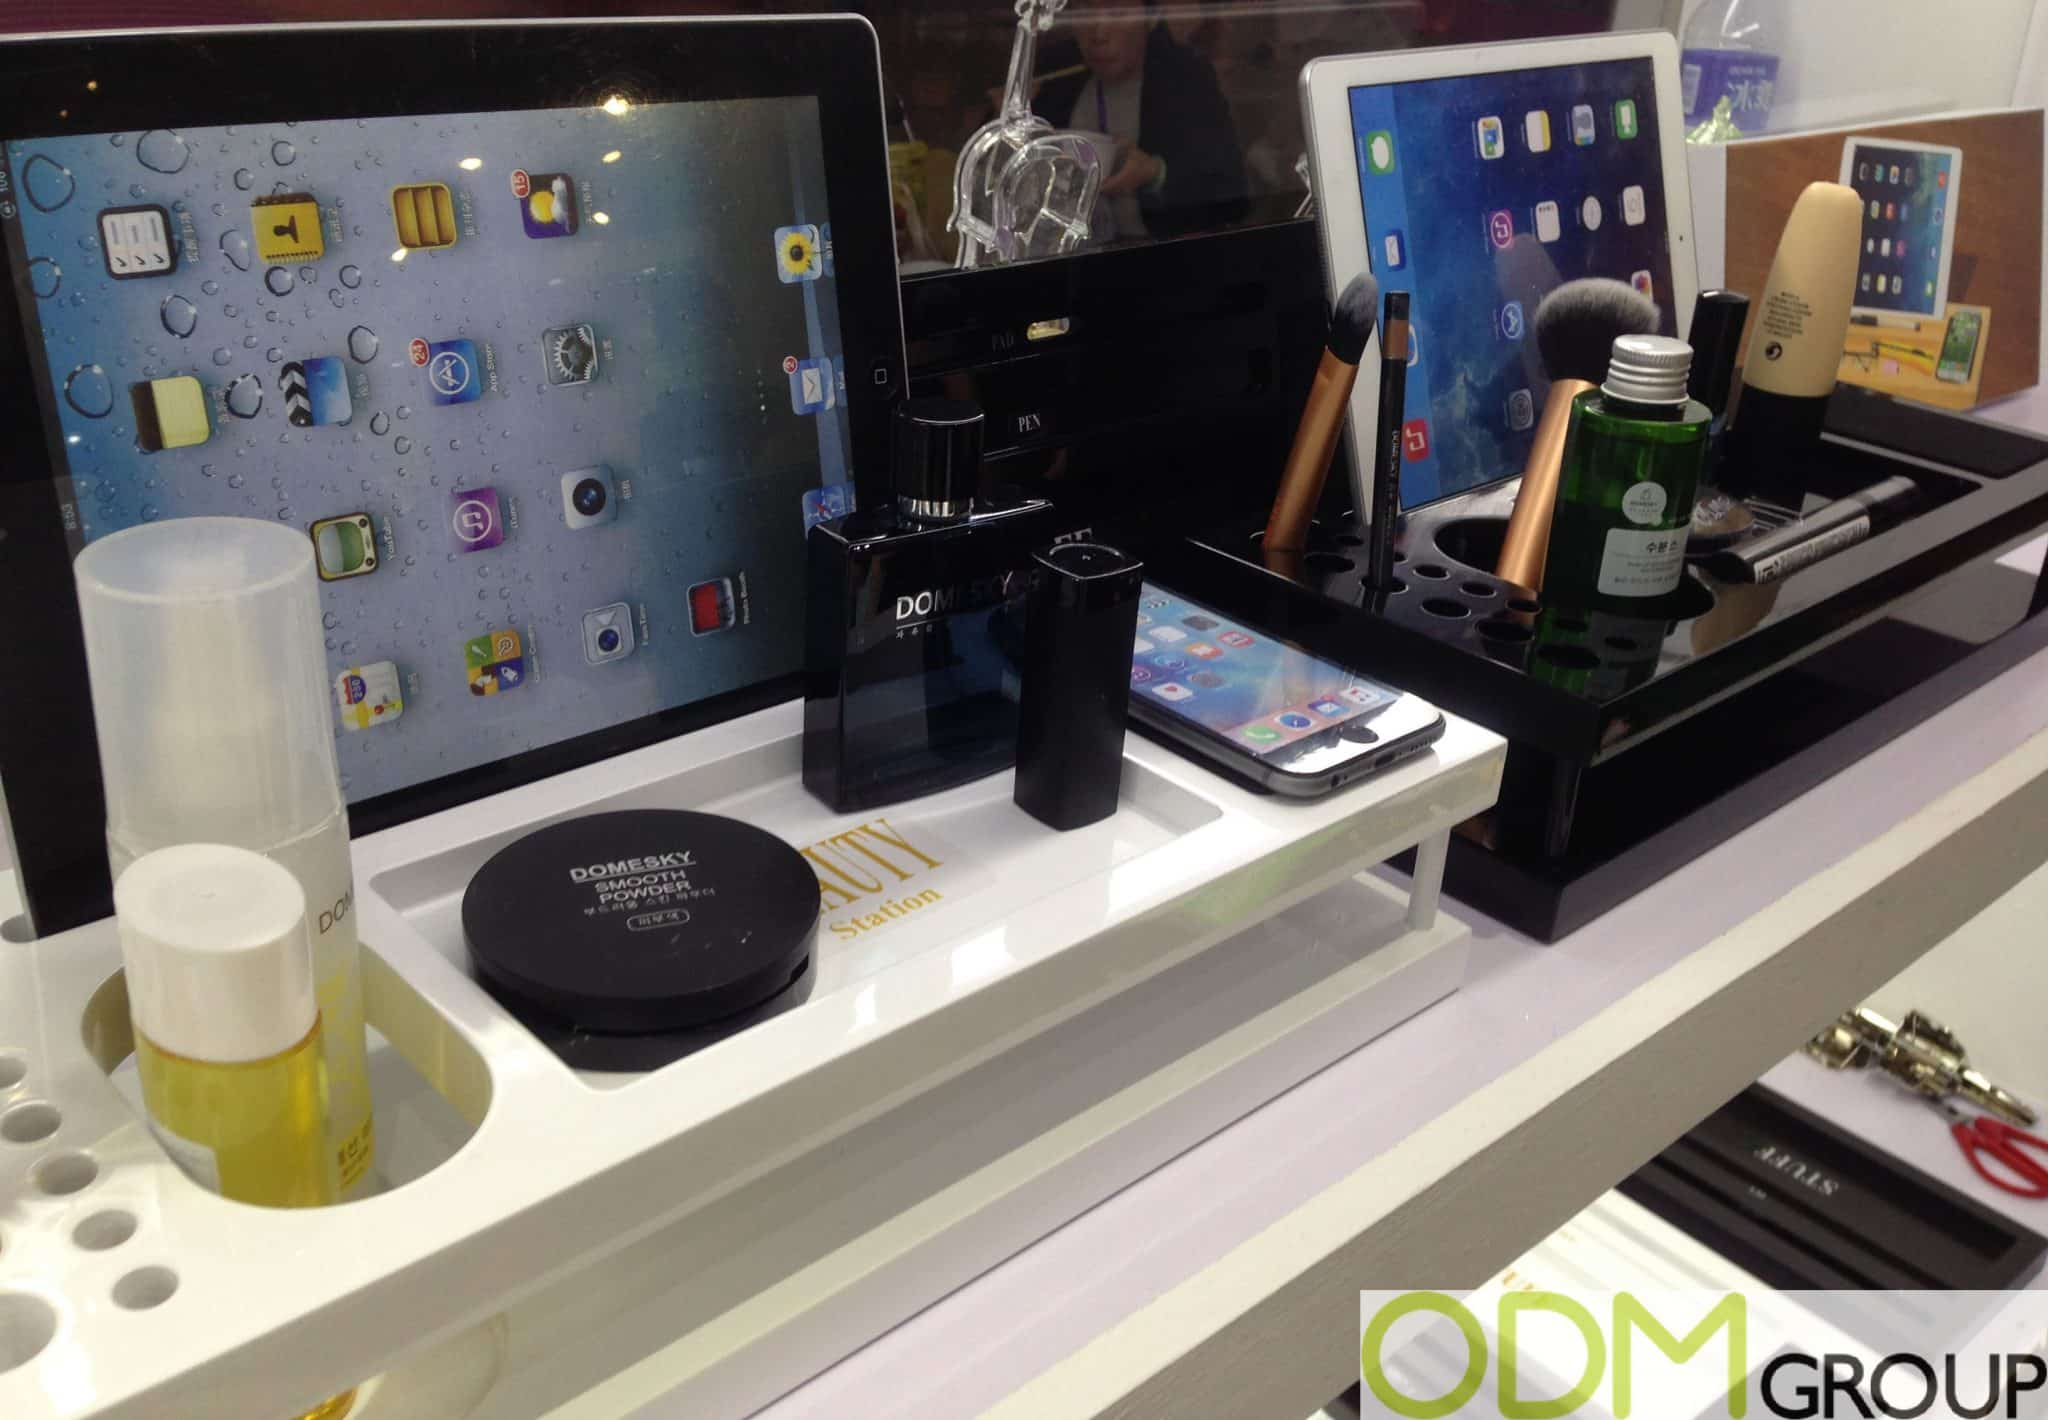 Branded Stand for Tablets and Beauty Products